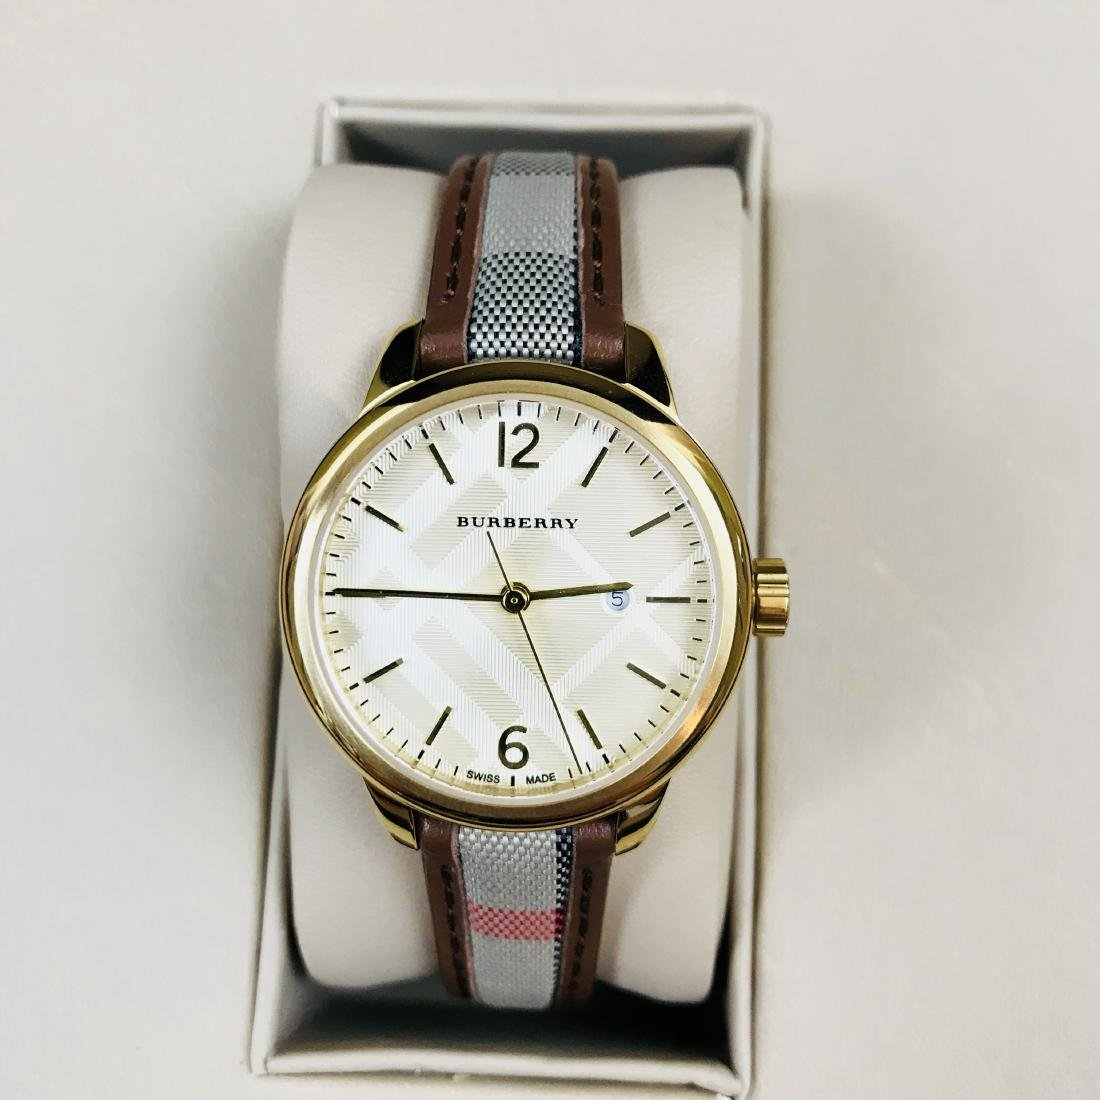 Burberry Swiss Made Gold Plated Classic Round Ladies - 3